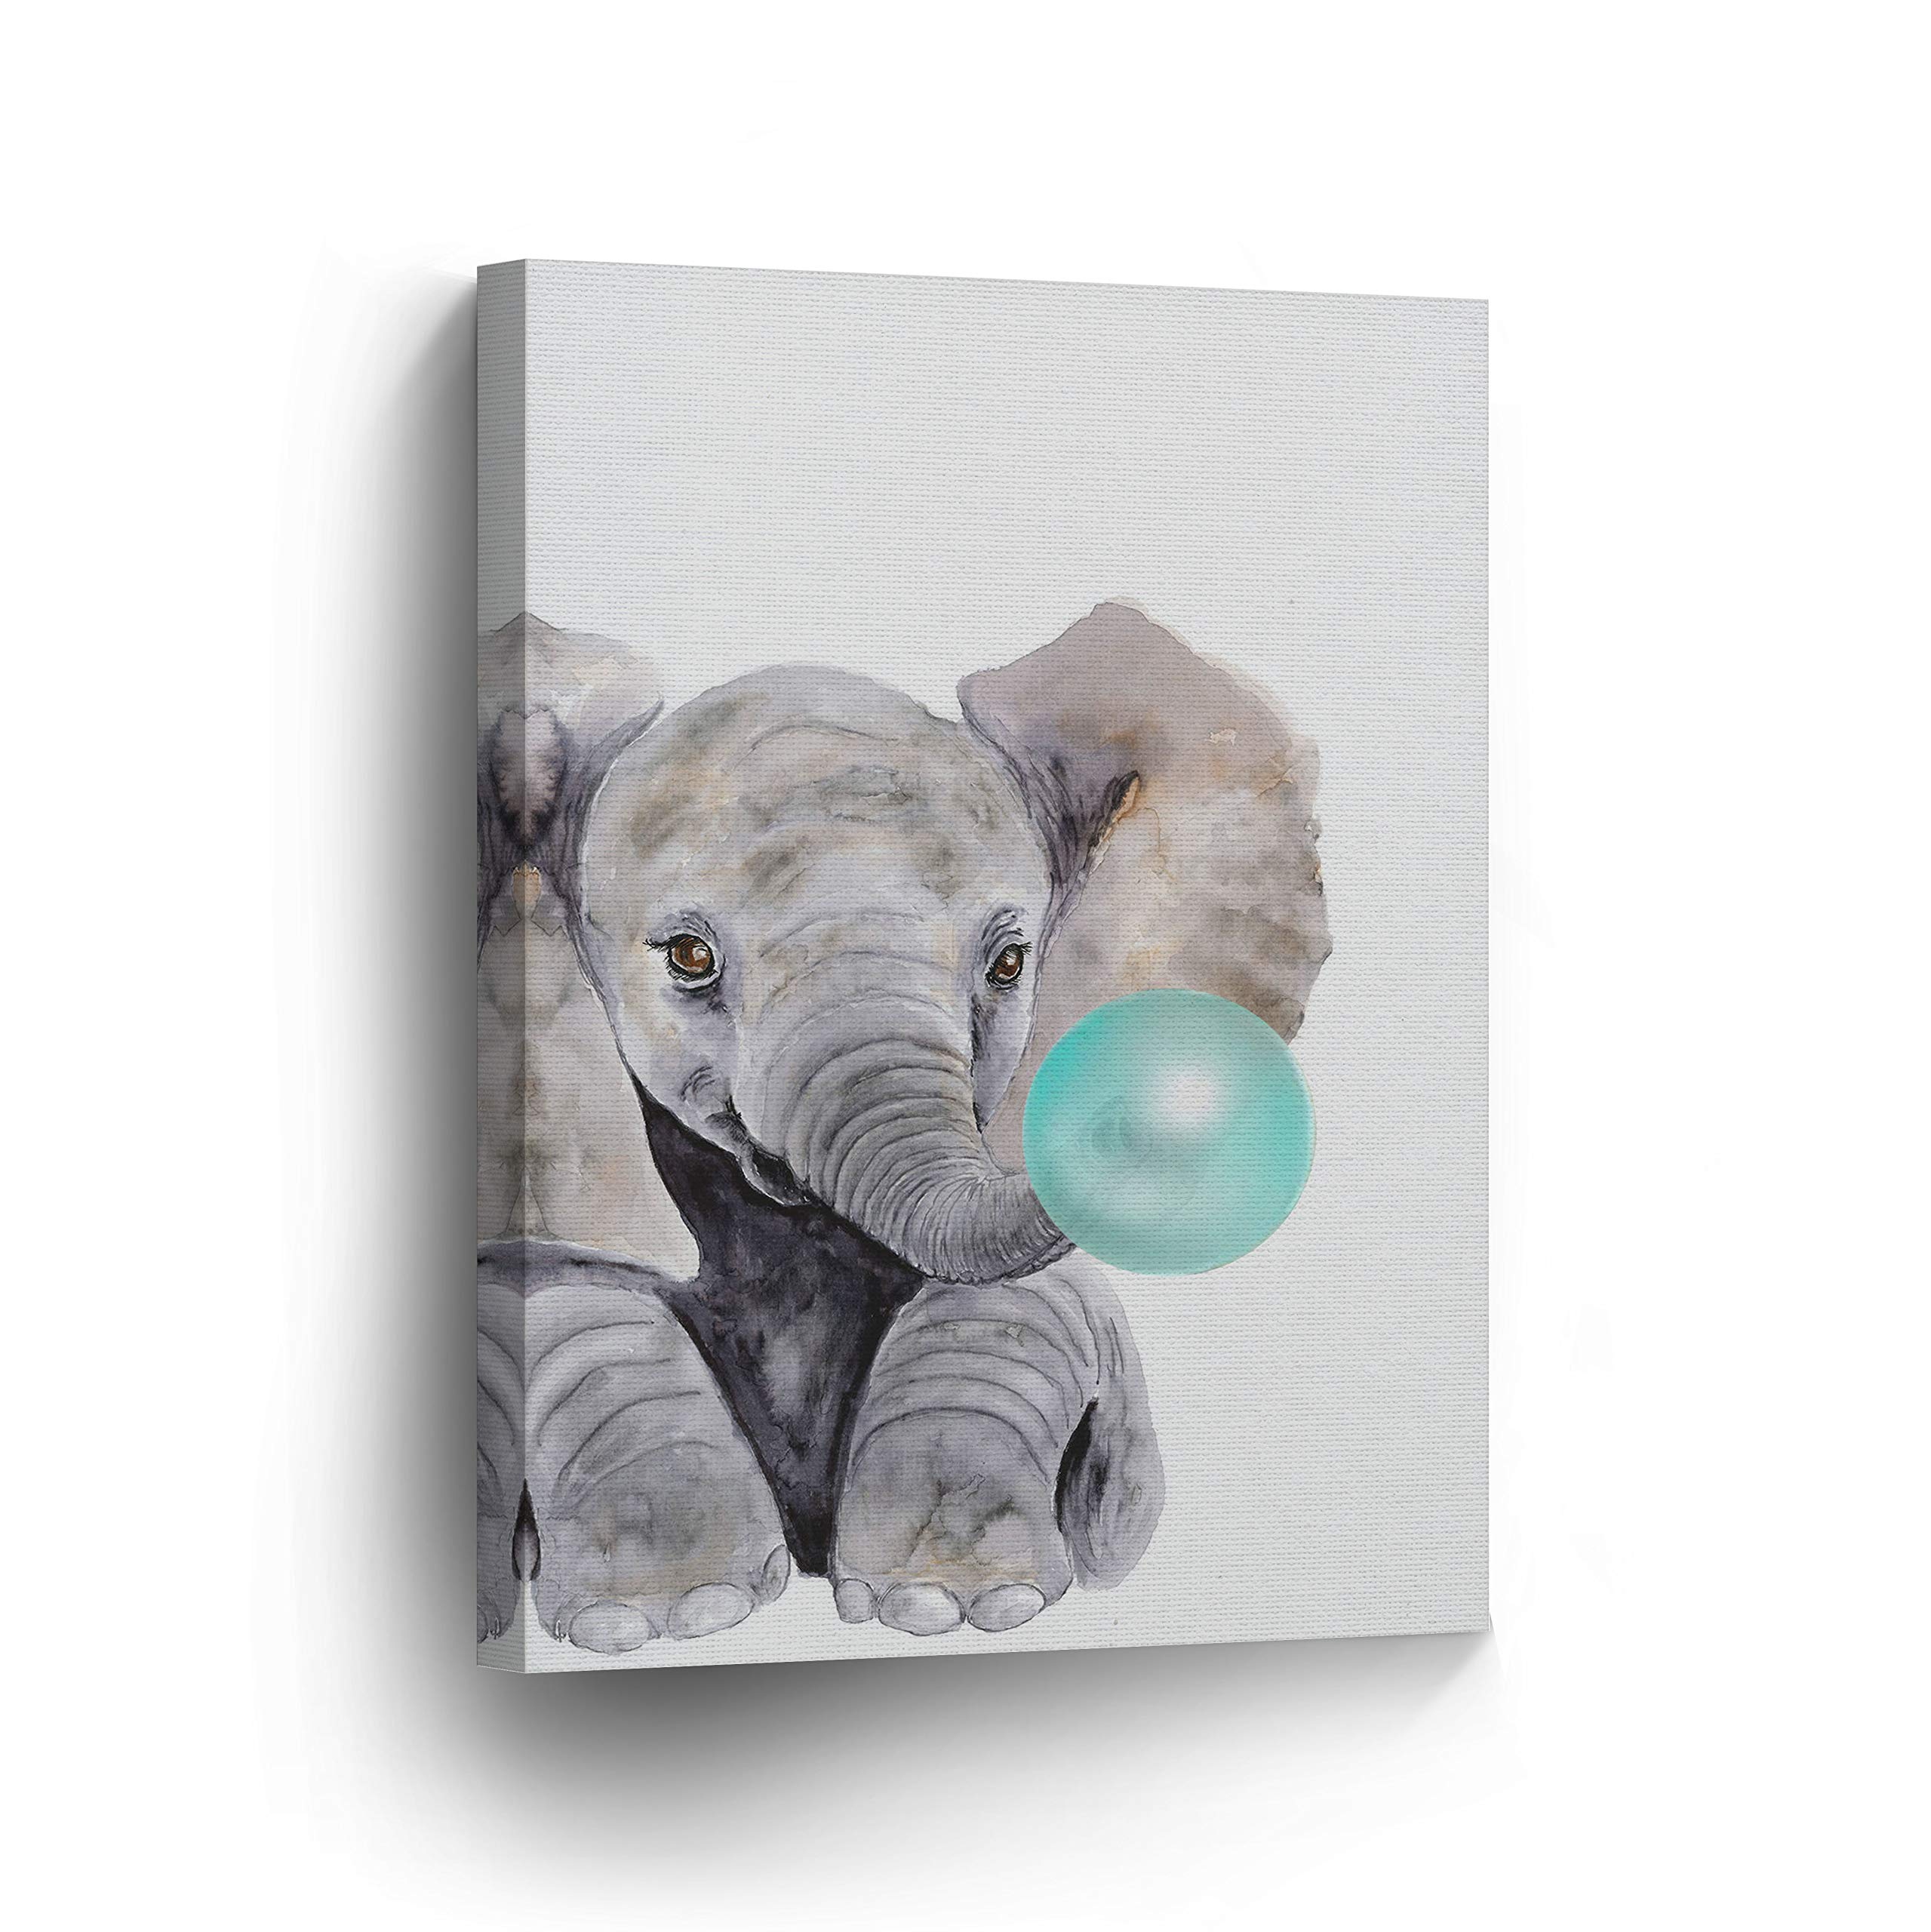 Cute Baby Elephant Animal Bubble Gum Art Teal Blue Canvas Print Watercolor Painting Wall Art Home Decoration Pop Art Kids Room Decor Stretched Ready to Hang-%100 Handmade in The USA - 12x8